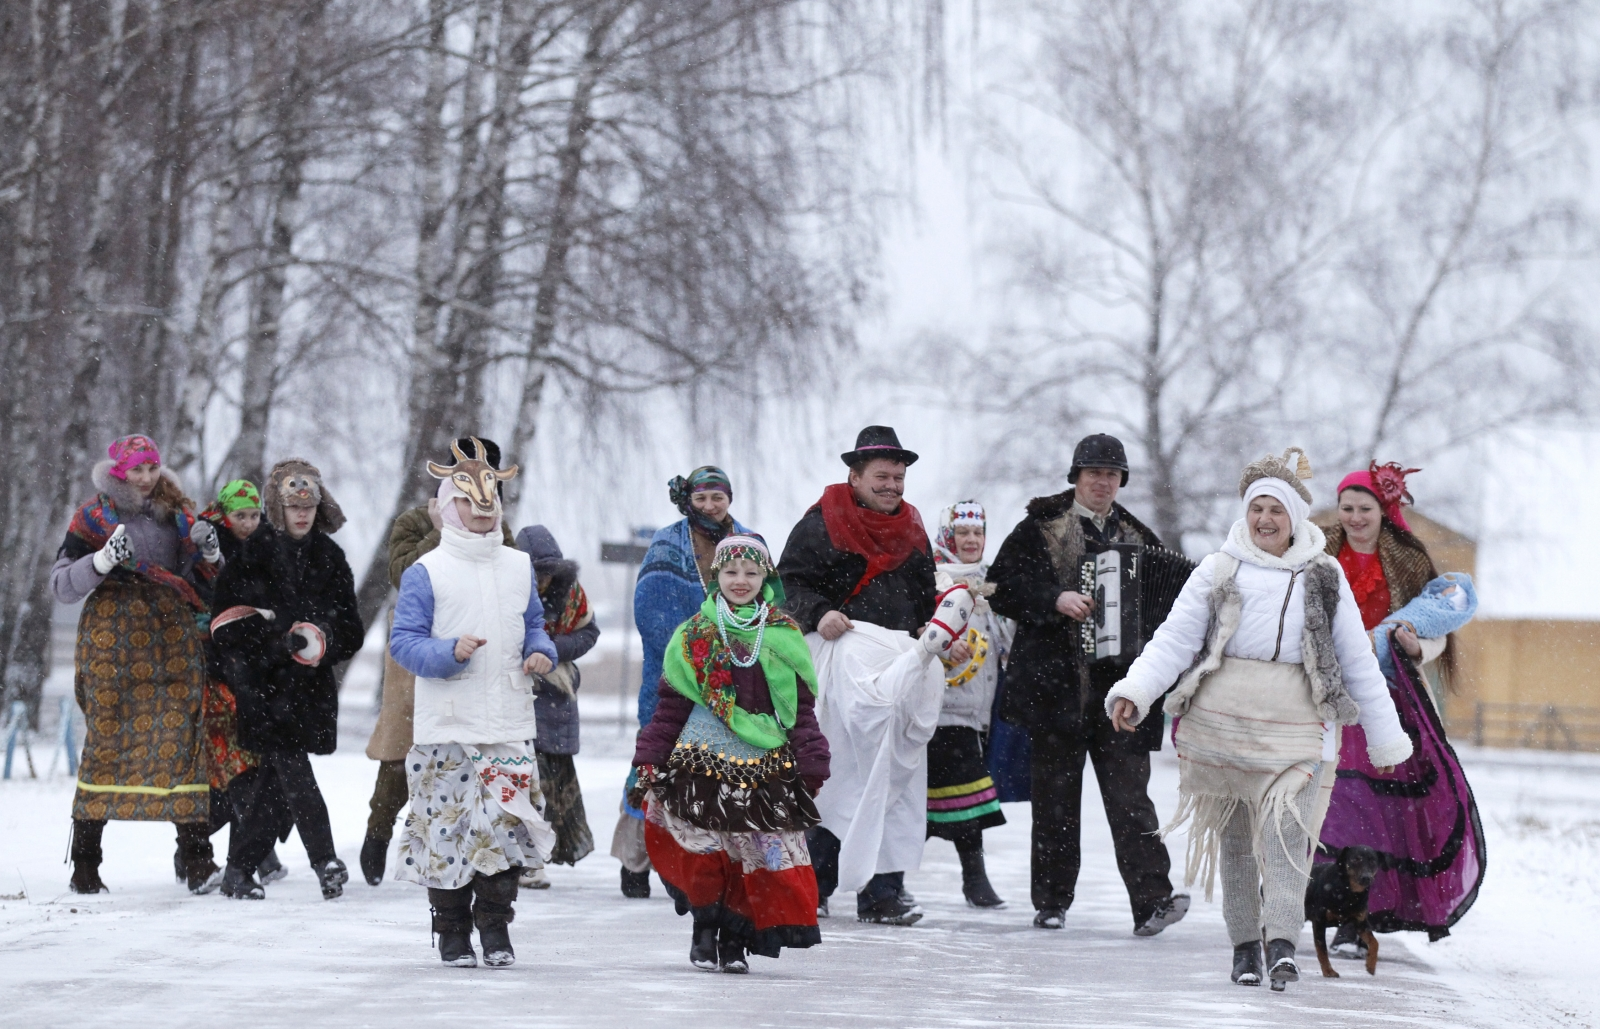 Sing near minsk in belarus on the eve of the orthodox new year reuters